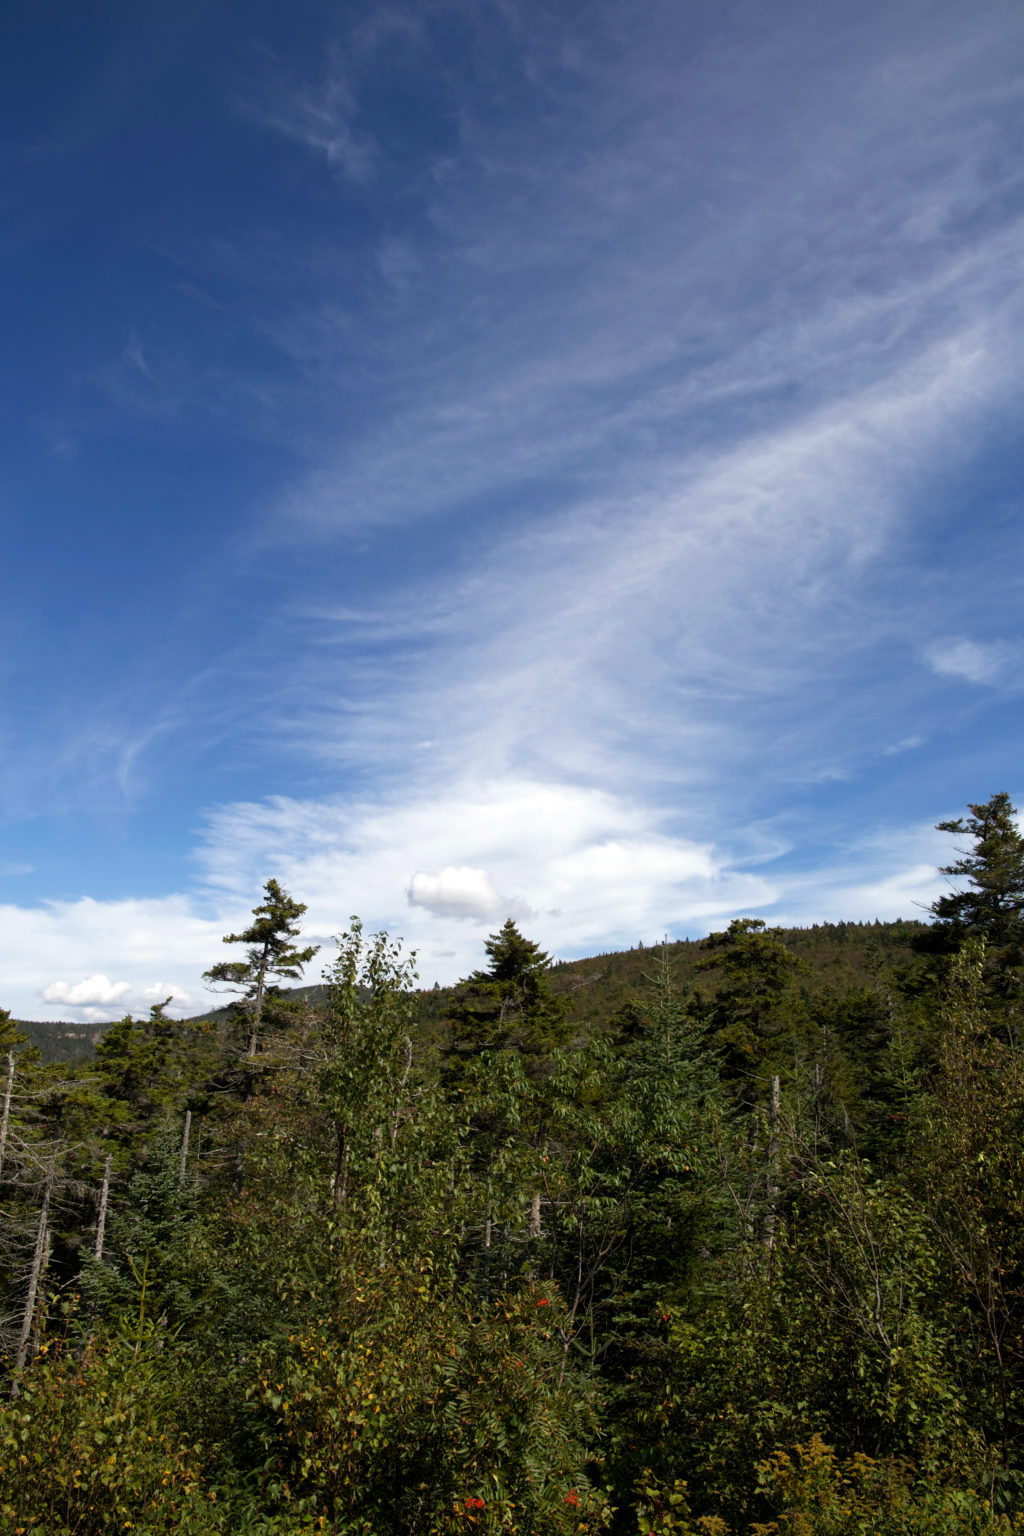 Thin Clouds in Blue Sky Over Forest